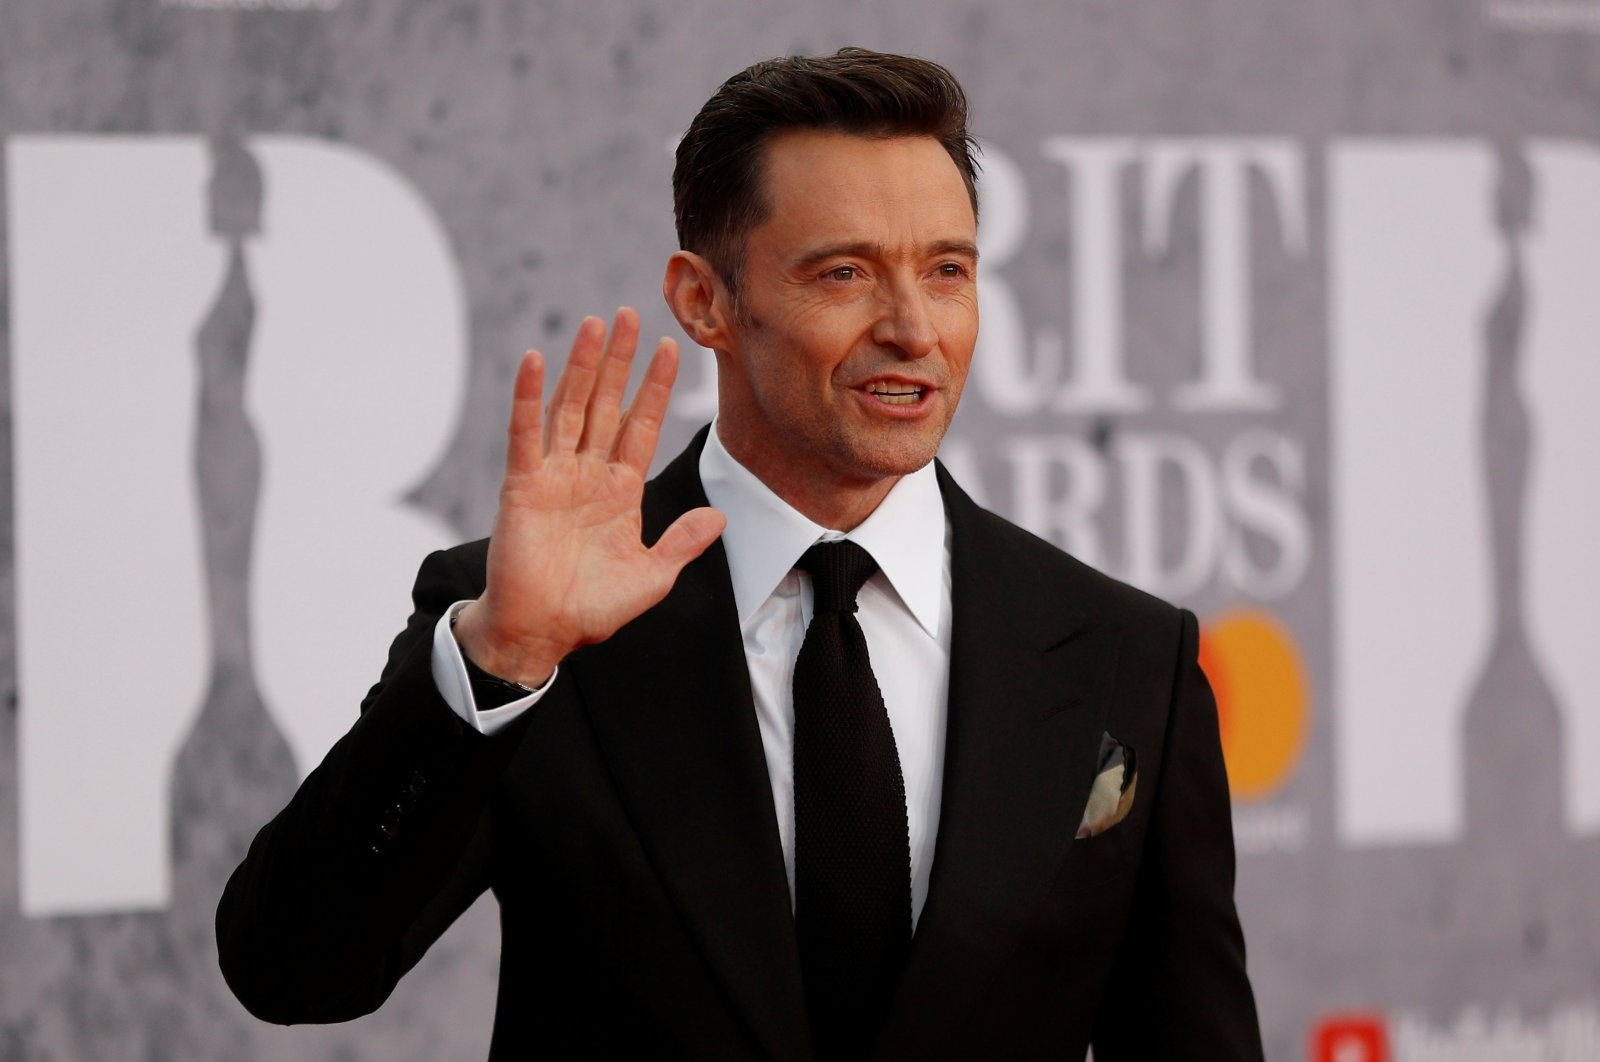 Hugh Jackman arrives for the Brit Awards at the O2 Arena in London, U.K., Feb. 20, 2019. (Reuters Photo)